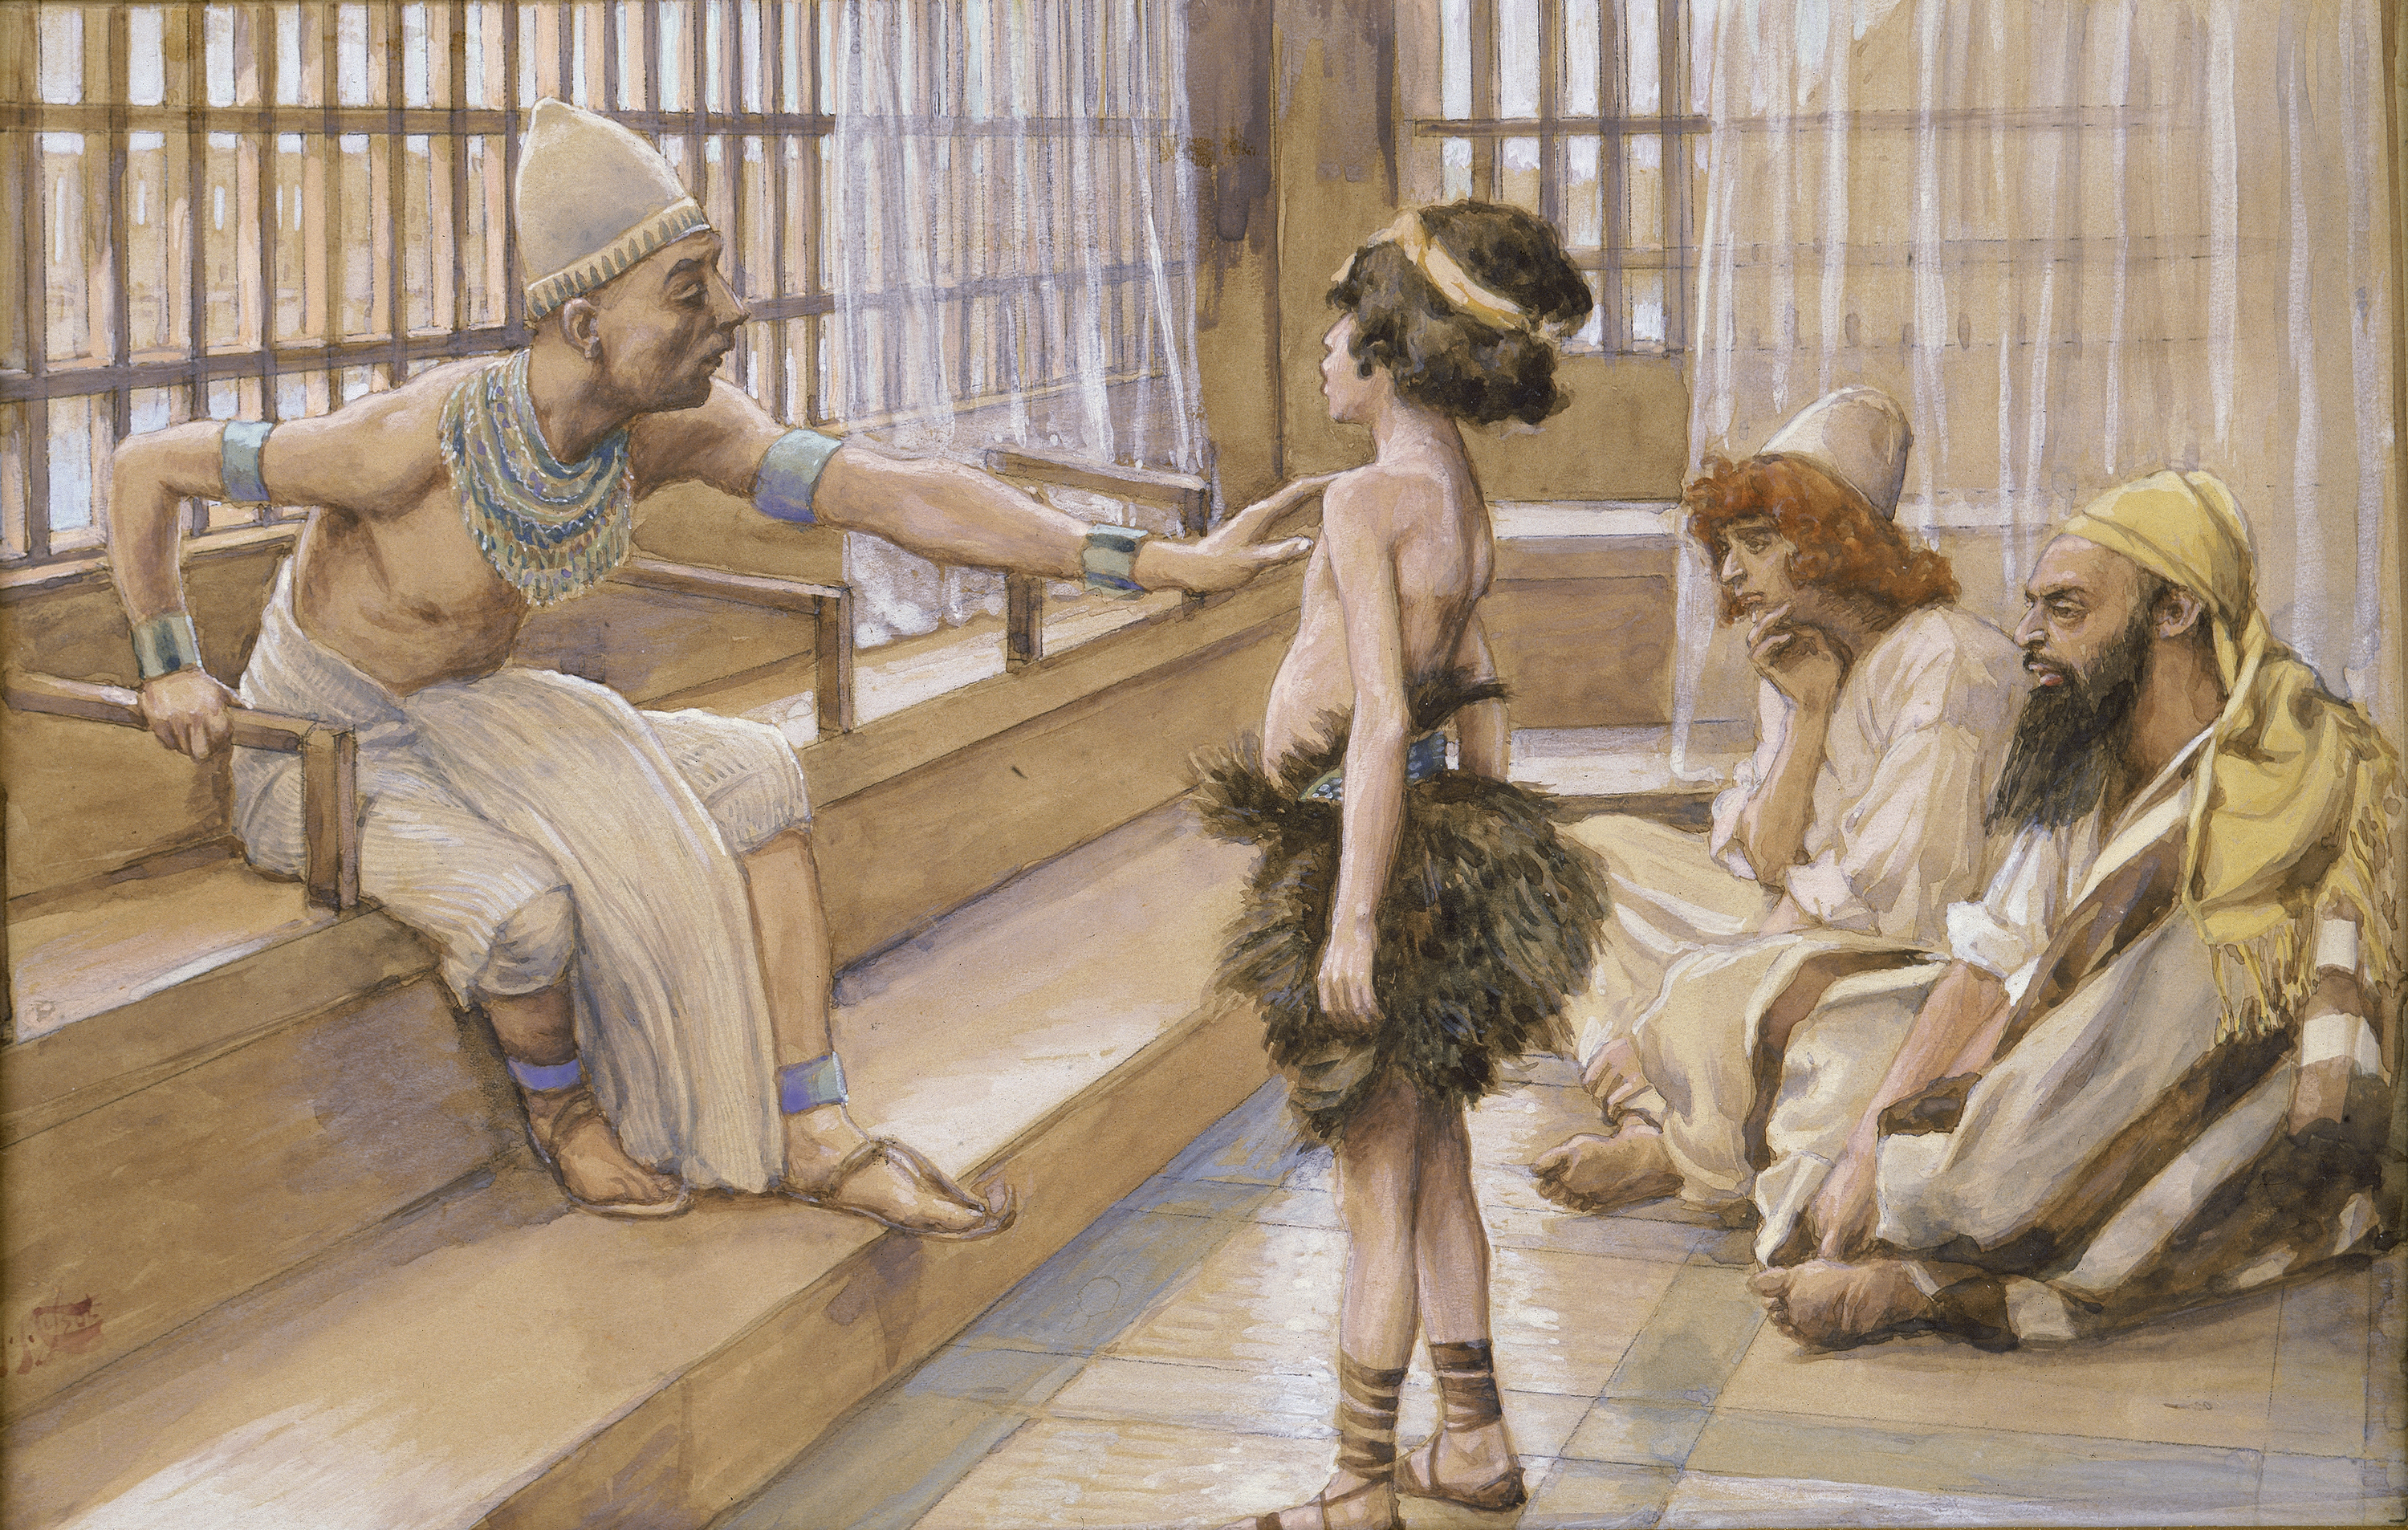 https://upload.wikimedia.org/wikipedia/commons/a/ac/Tissot_Joseph_Sold_into_Egypt.jpg